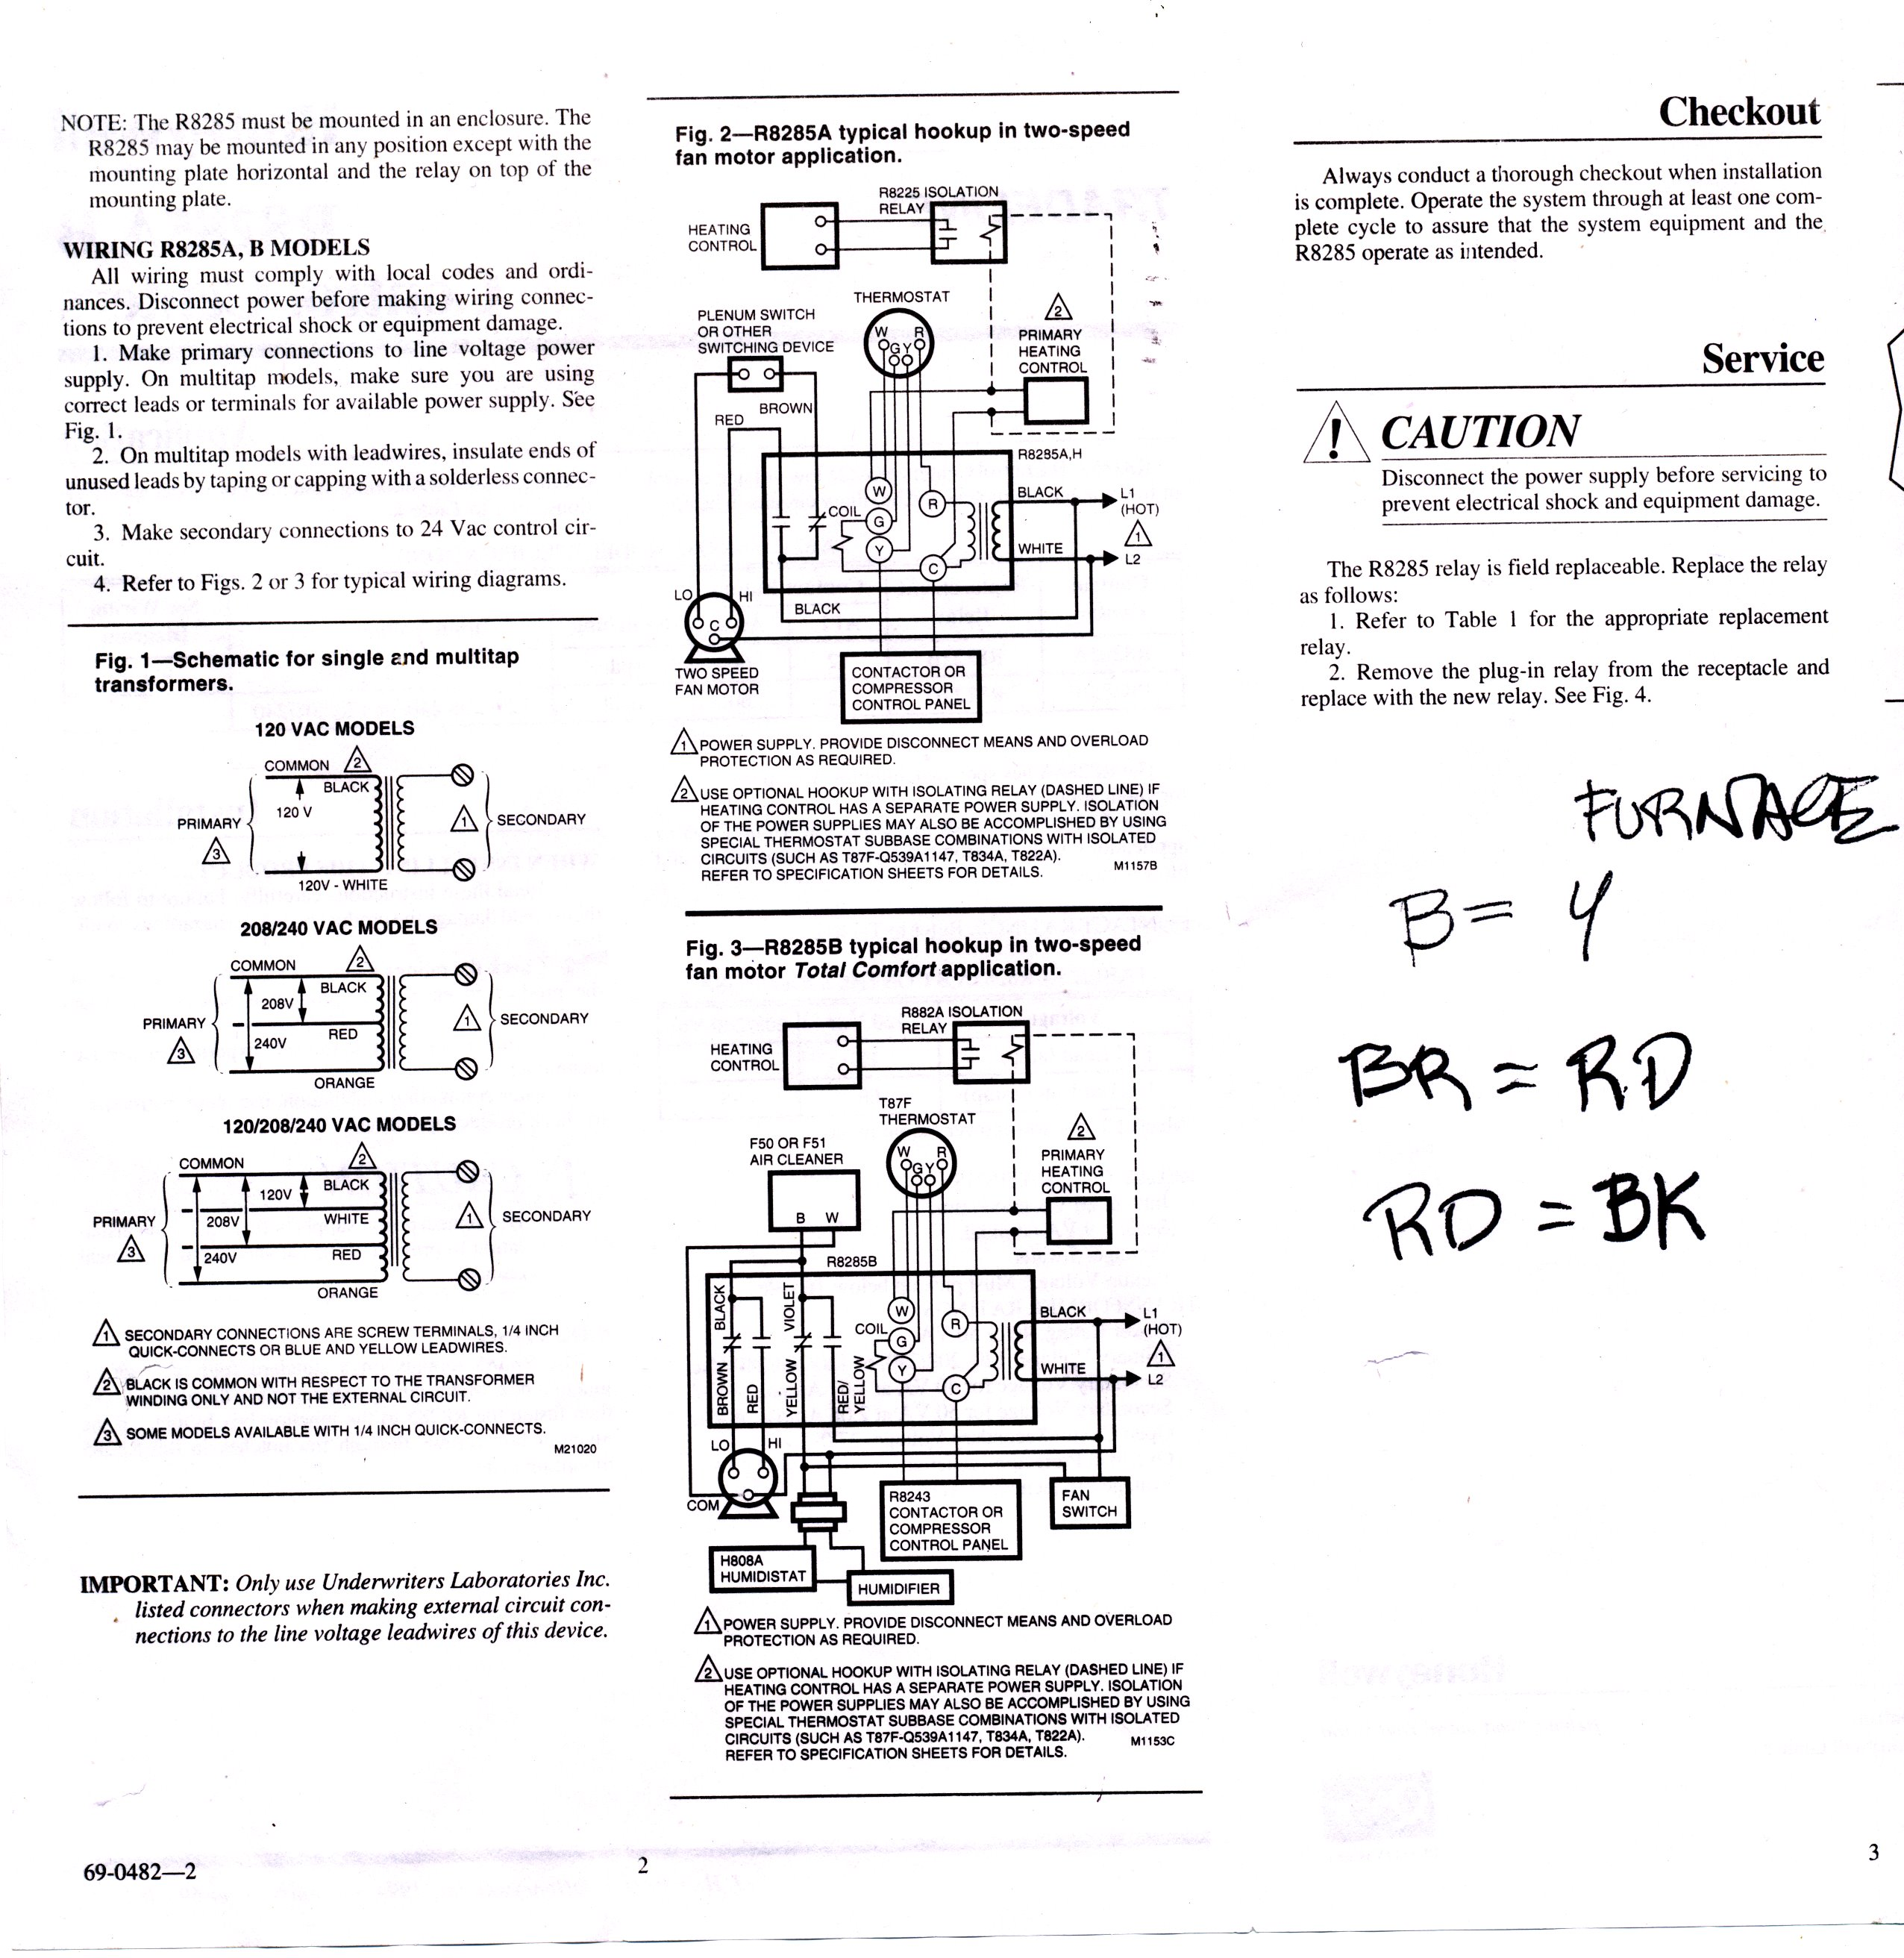 American Standard Furnace Wiring Diagram from static-resources.imageservice.cloud